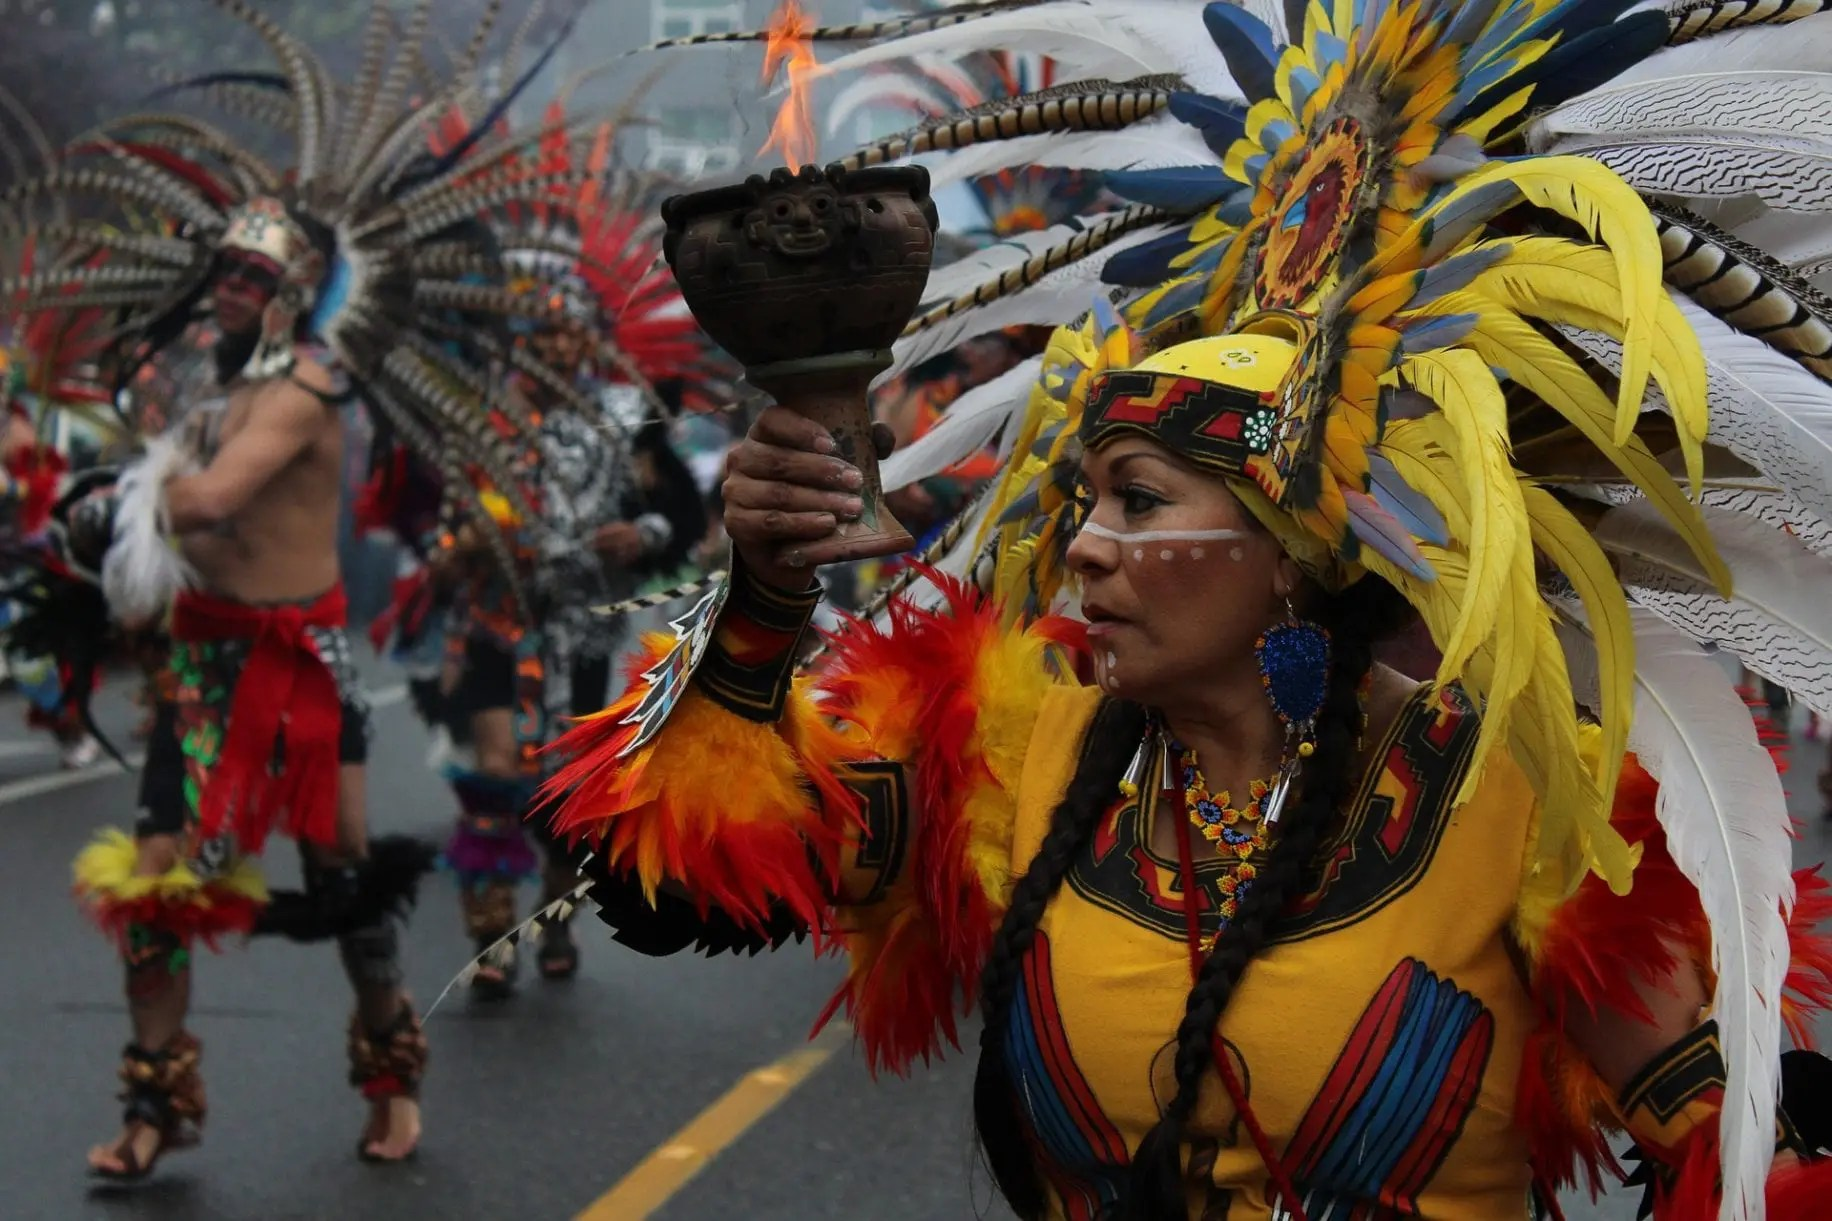 Indigenous Women Trapped in Human Trafficking in North America